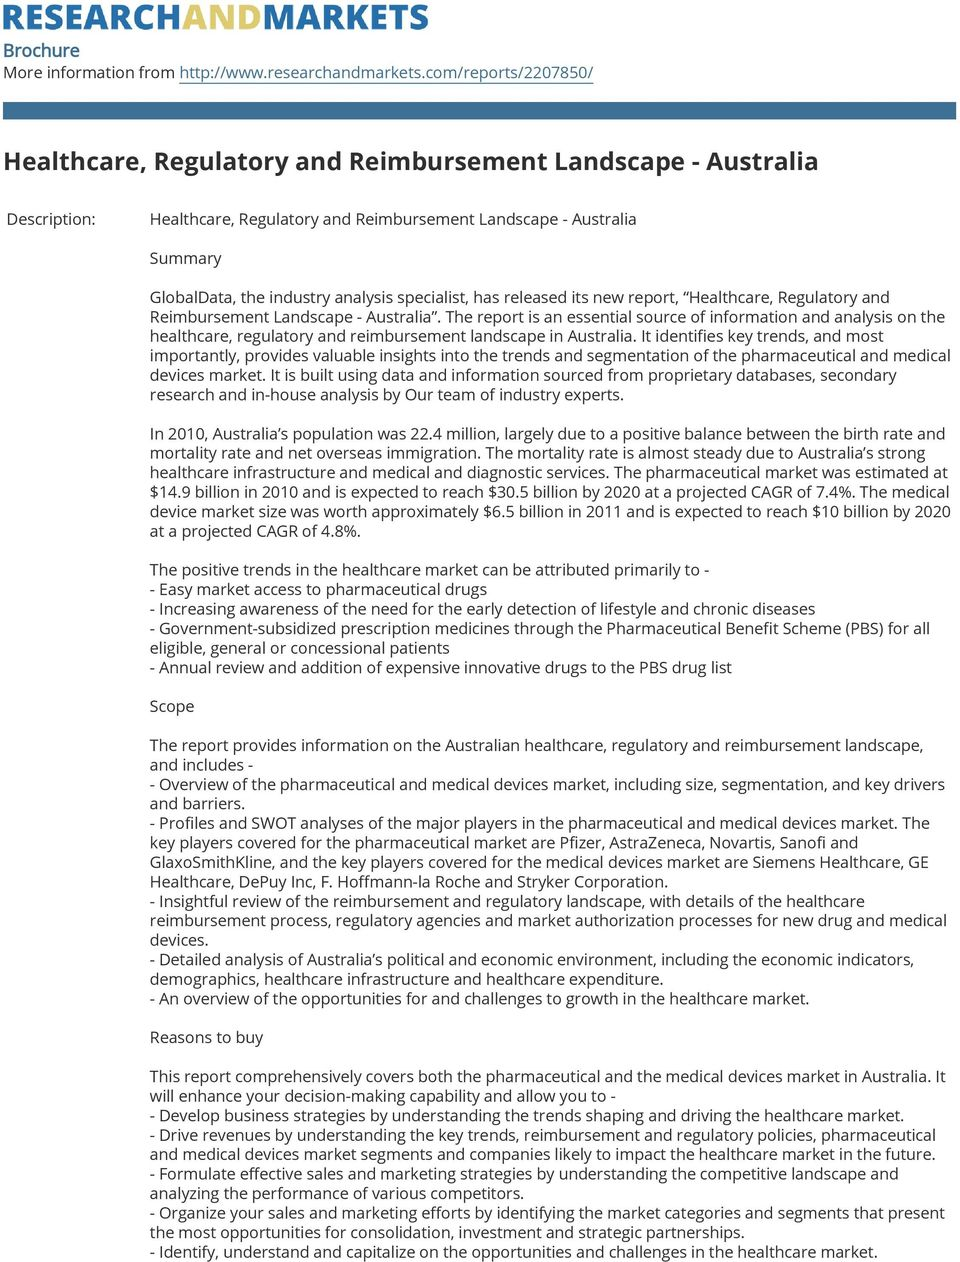 analysis specialist, has released its new report, Healthcare, Regulatory and Reimbursement Landscape - Australia.